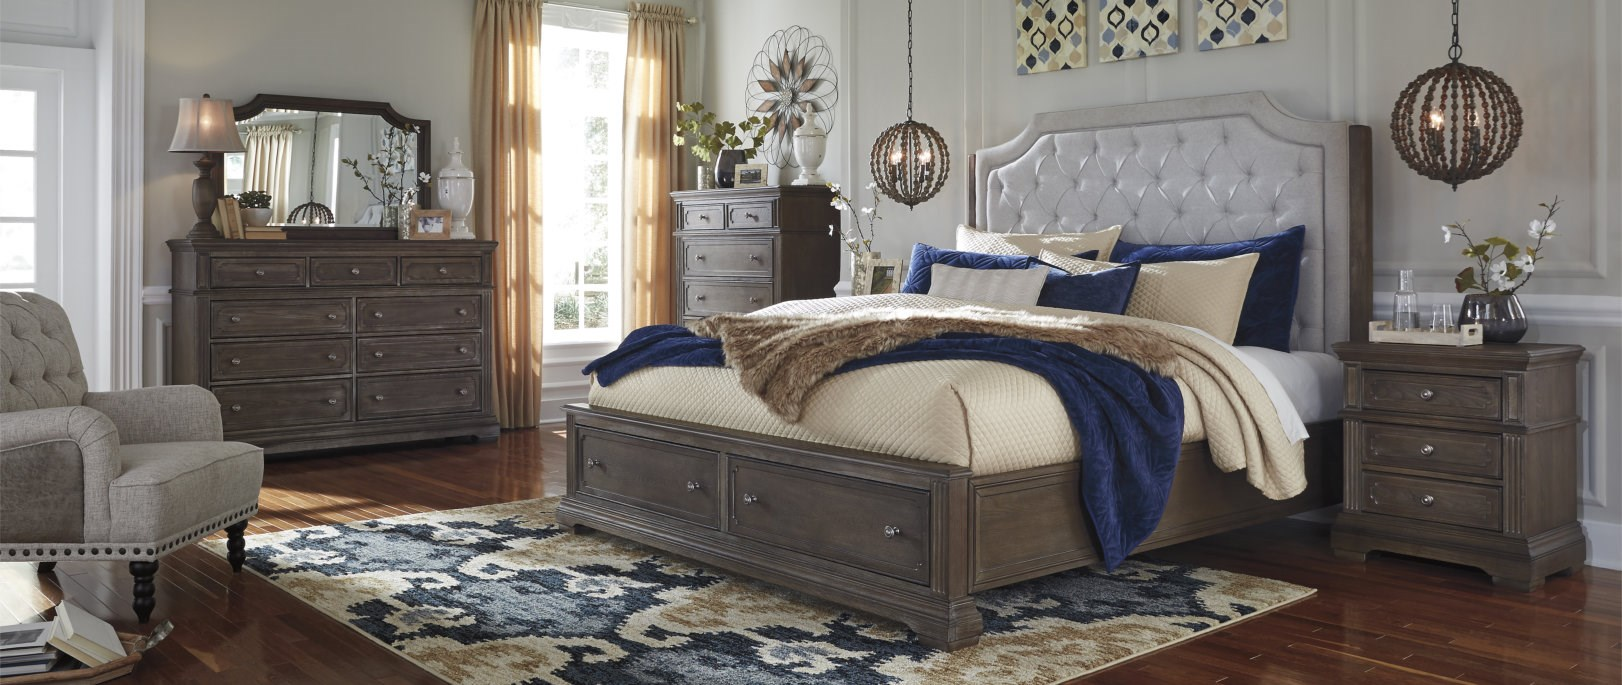 upholstered headboard wood bedroom set